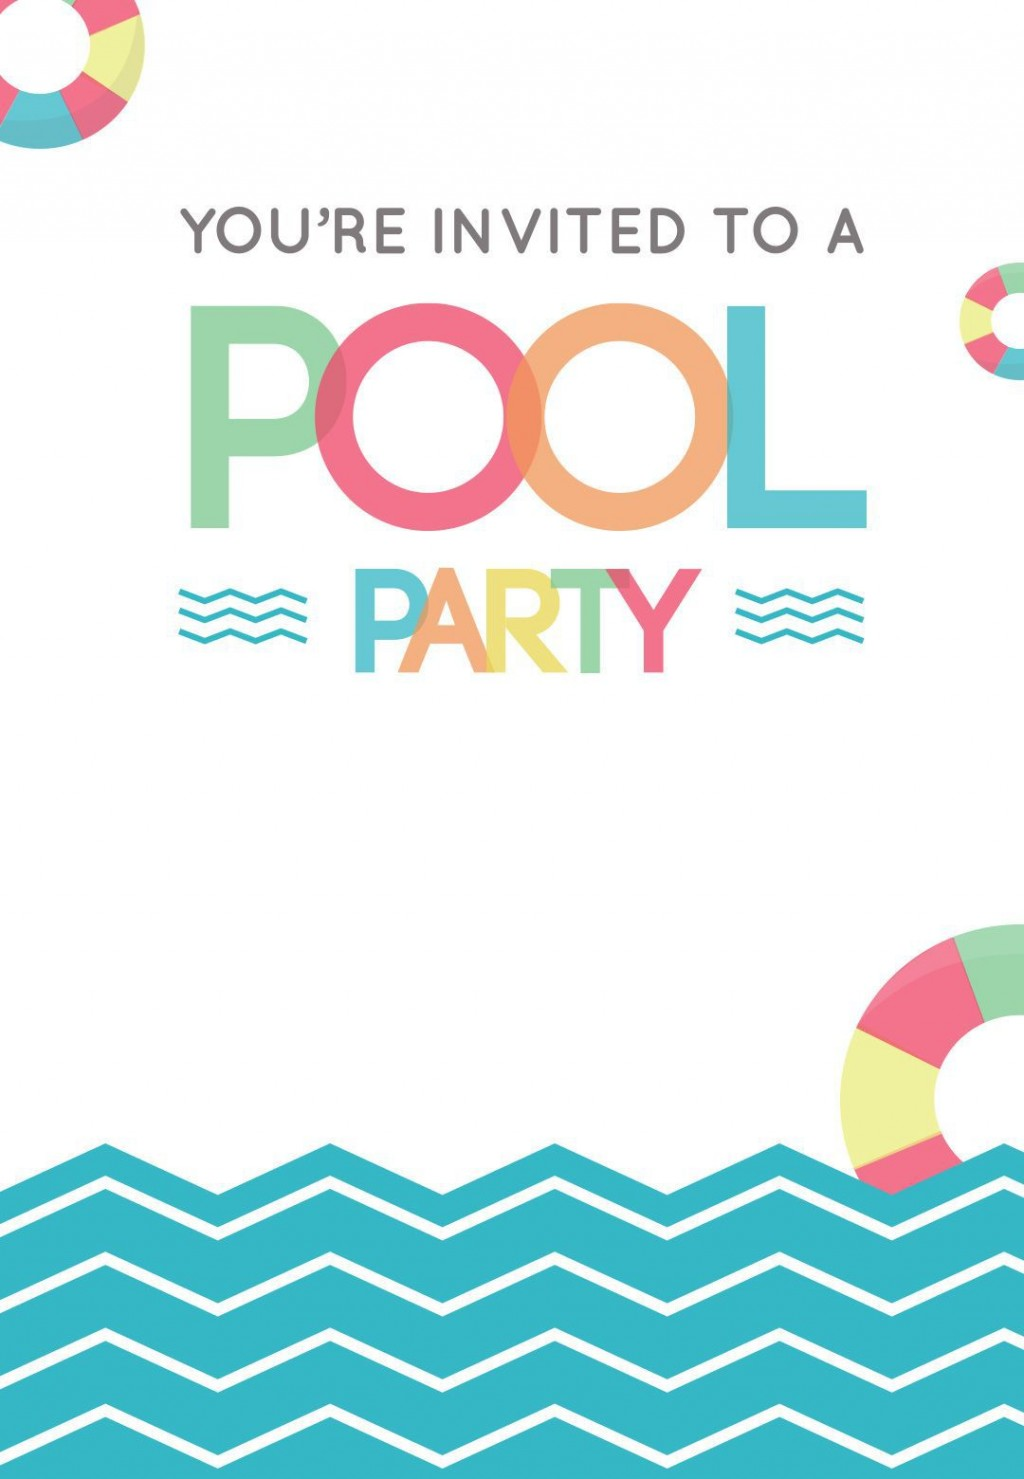 002 Fearsome Free Pool Party Invitation Template Printable Image  Card SummerLarge